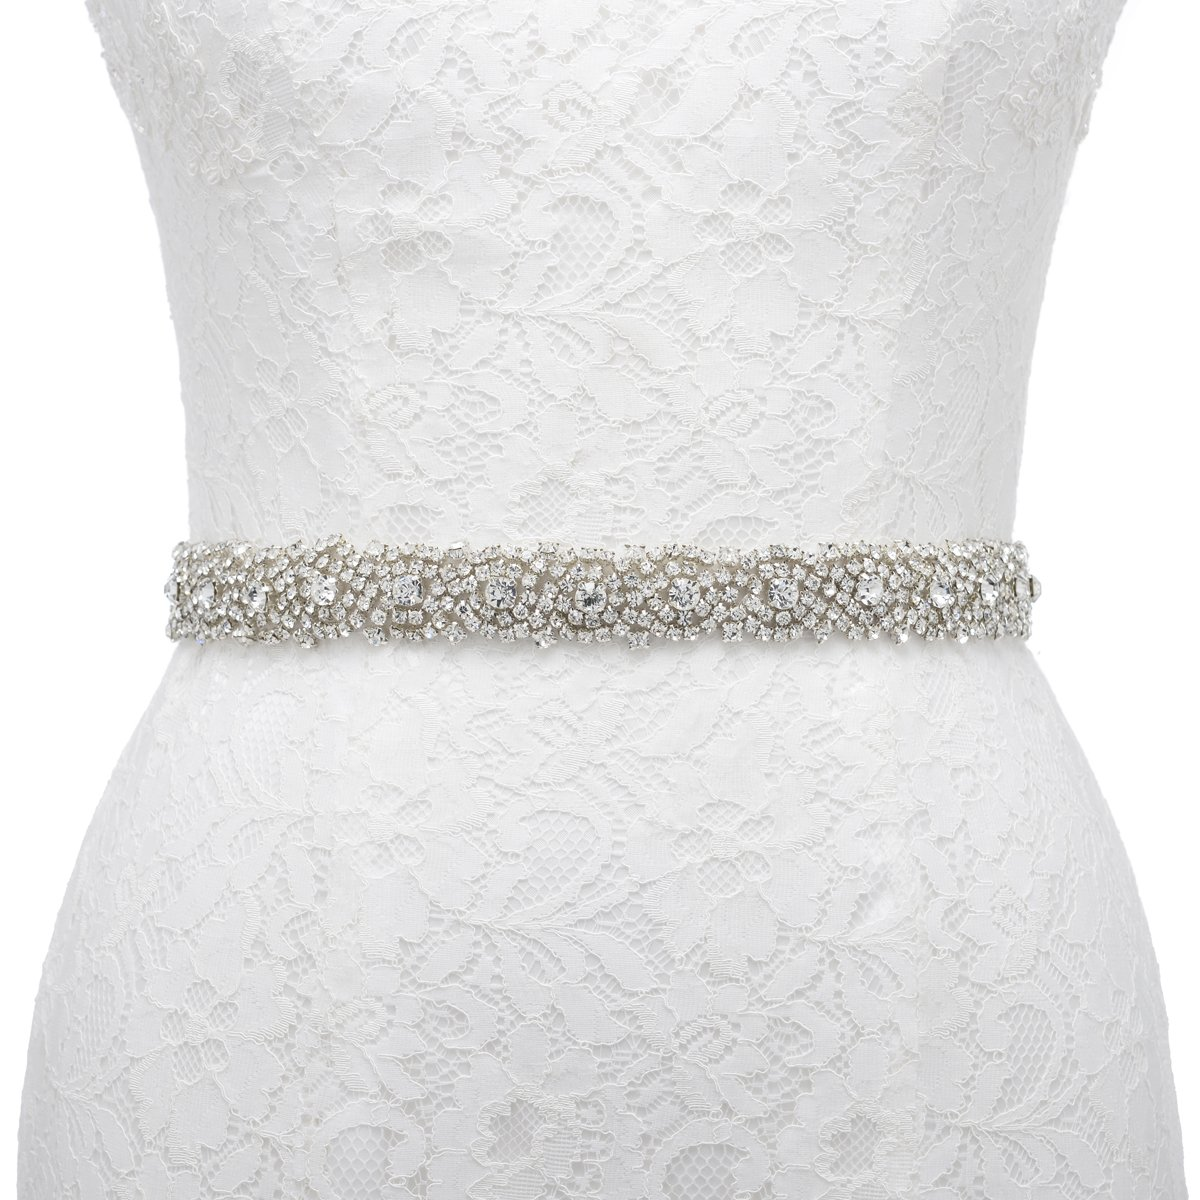 Wedding Dress Belts: Rhinestone Belts For Dresses: Amazon.com